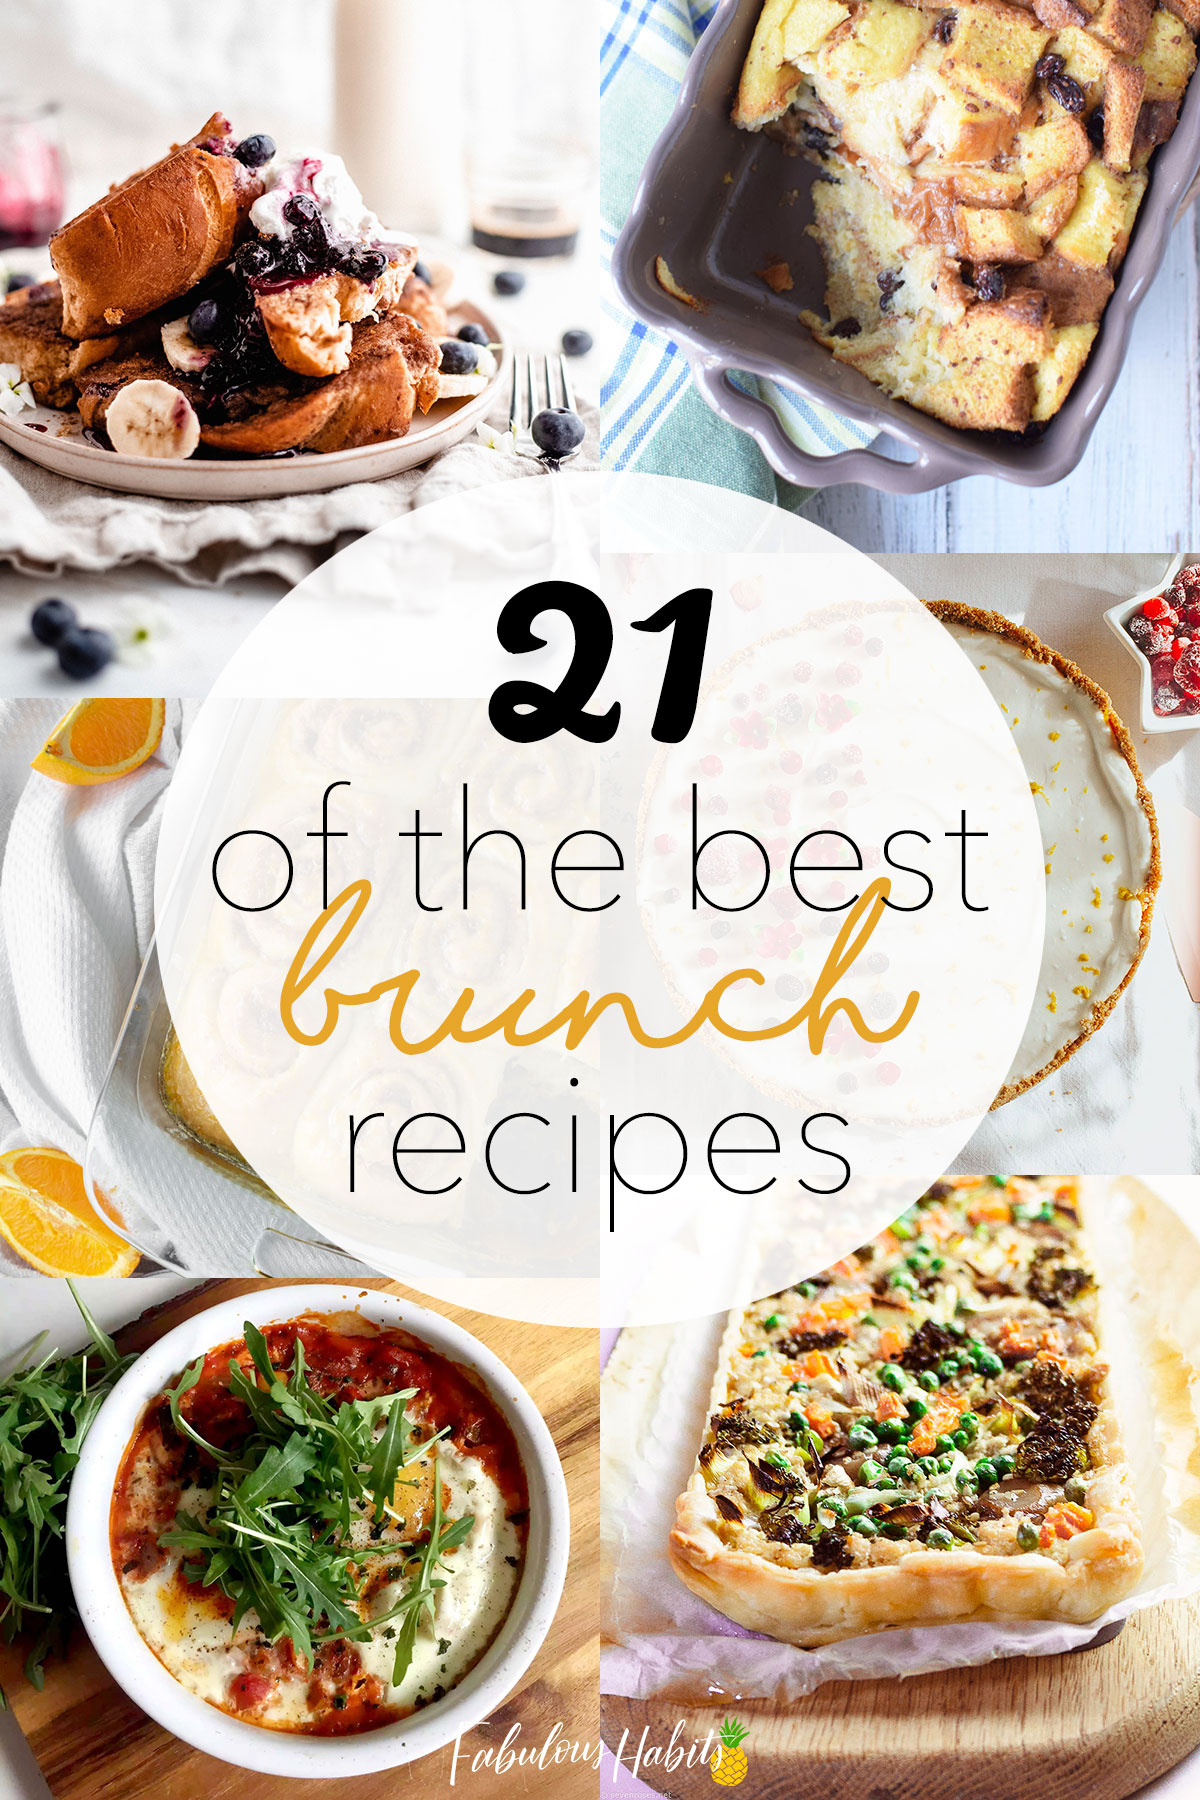 I mean, because who ISN'T into brunch? These 21 incredible brunch recipes are delicious and easy to make from your own kitchen! #brunchrecipeideas